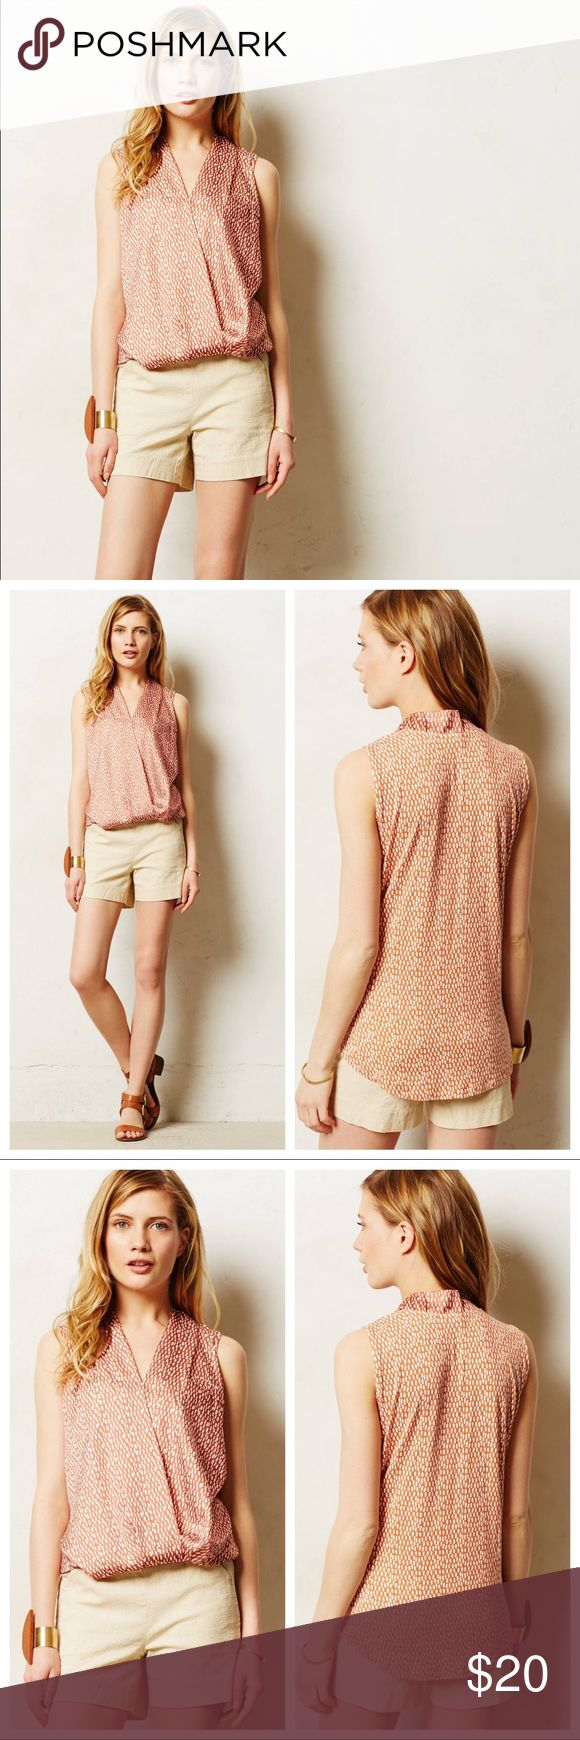 "Anthropologie Dolan Pia Crossover Tank Details:  When it comes to basics, we can't get enough of easy, thoughtful pieces that go beyond the call of casual duty. Dolan's silky-slouchy top will take you from desk to dinner. EUC. Tiny bit of pulling at neckline as shown.   By Dolan Pullover styling Polyester, rayon, spandex; polyester lining Machine wash Regular: 24""L Petite: 22.25""L USA Style No. 4112212061755 Anthropologie Tops Tank Tops"